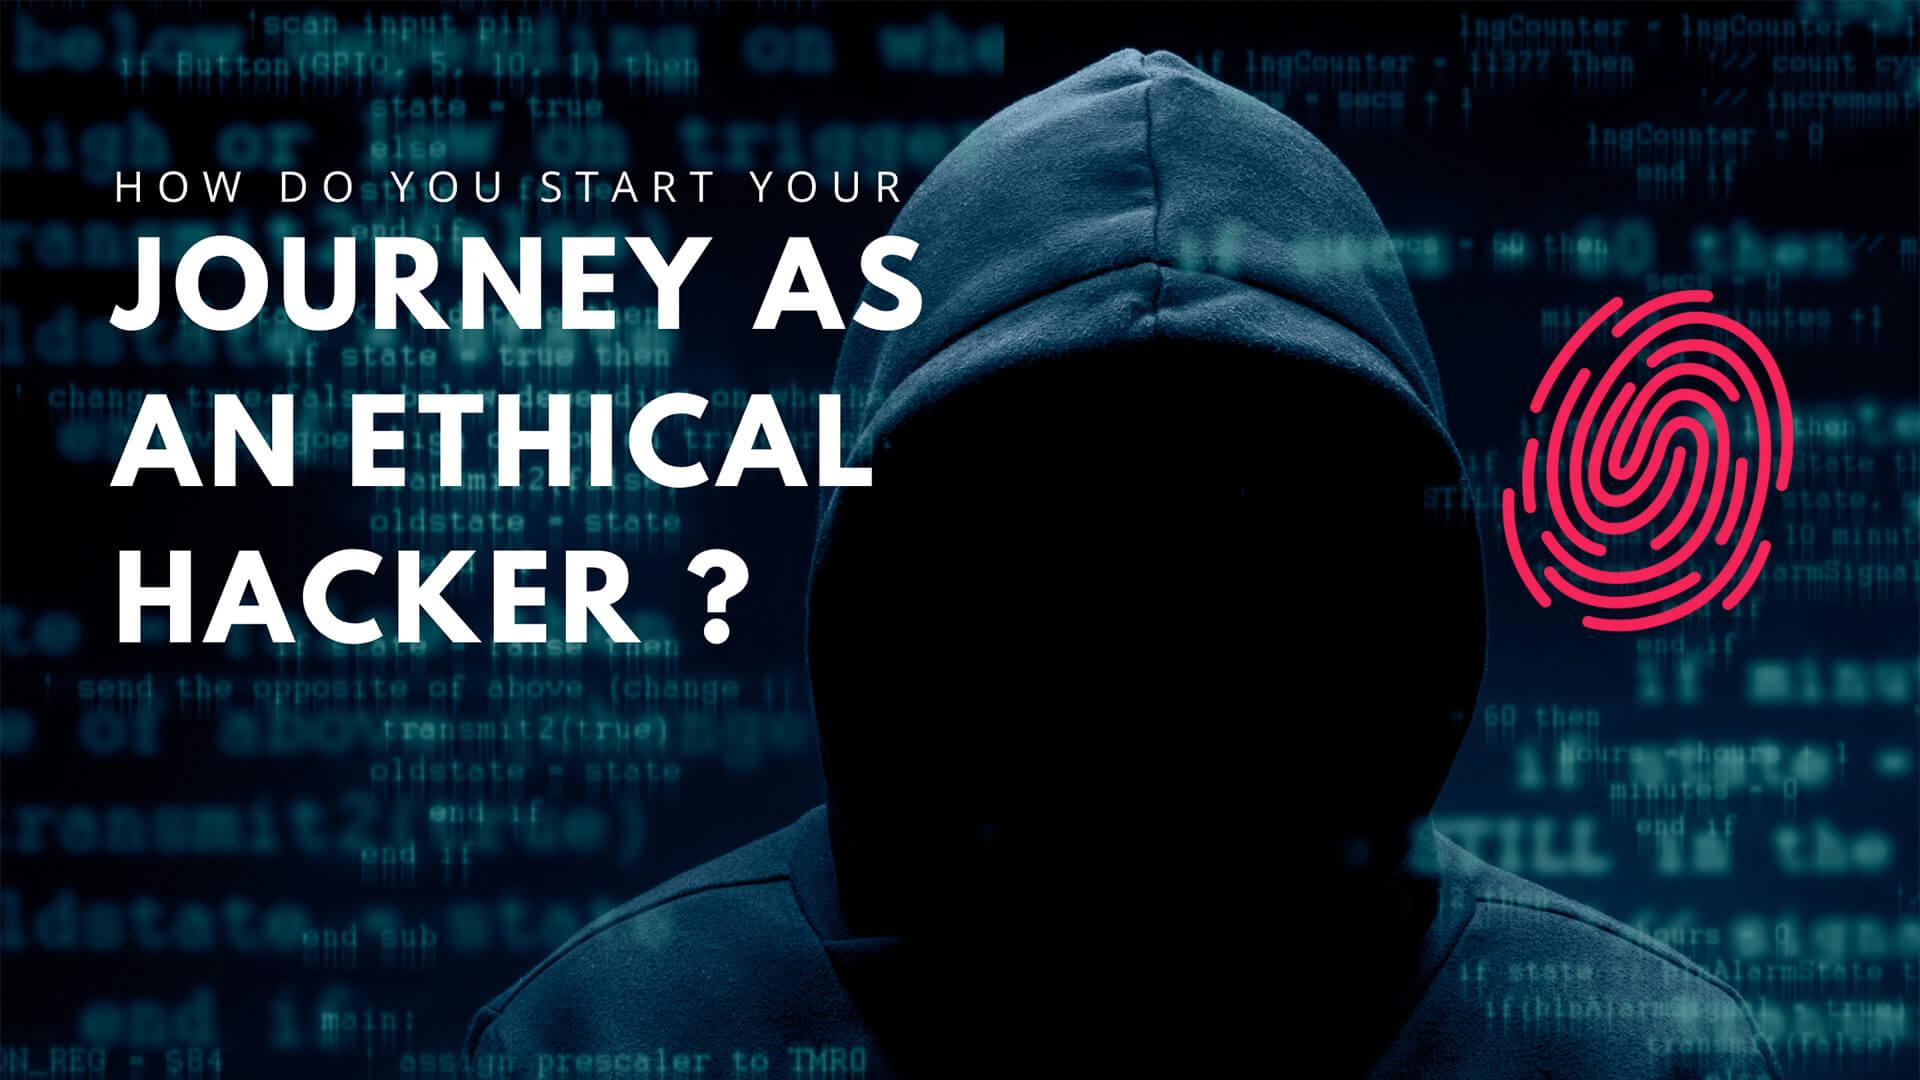 How Do You start Your Journey as an Ethical Hacker?